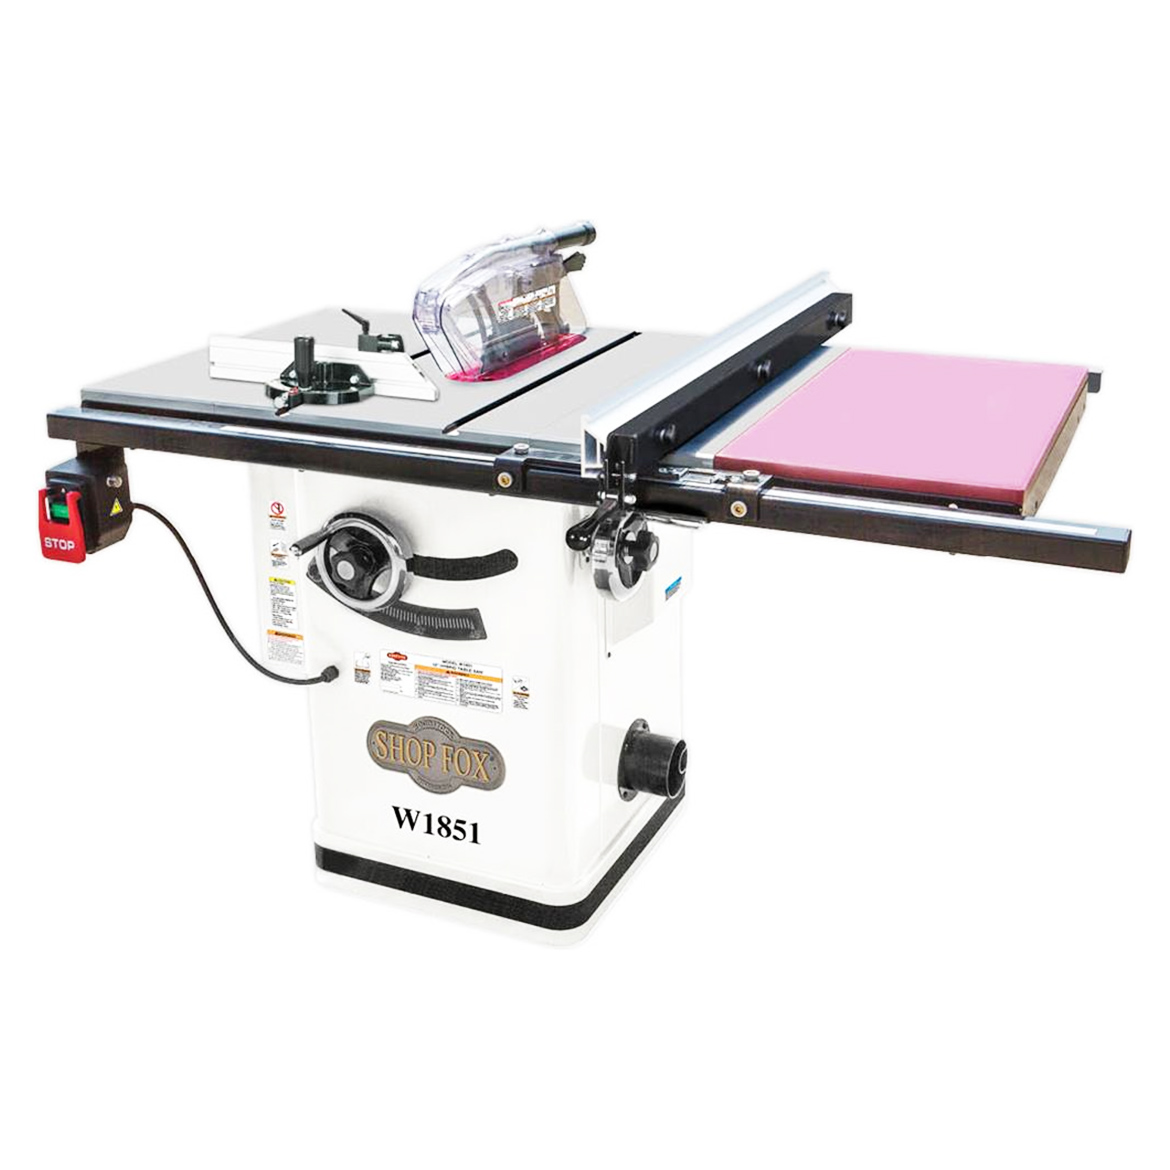 Shop Fox W1851 10-Inch 2-Hp Hybrid Cabinet Table Saw w  Extension Table by